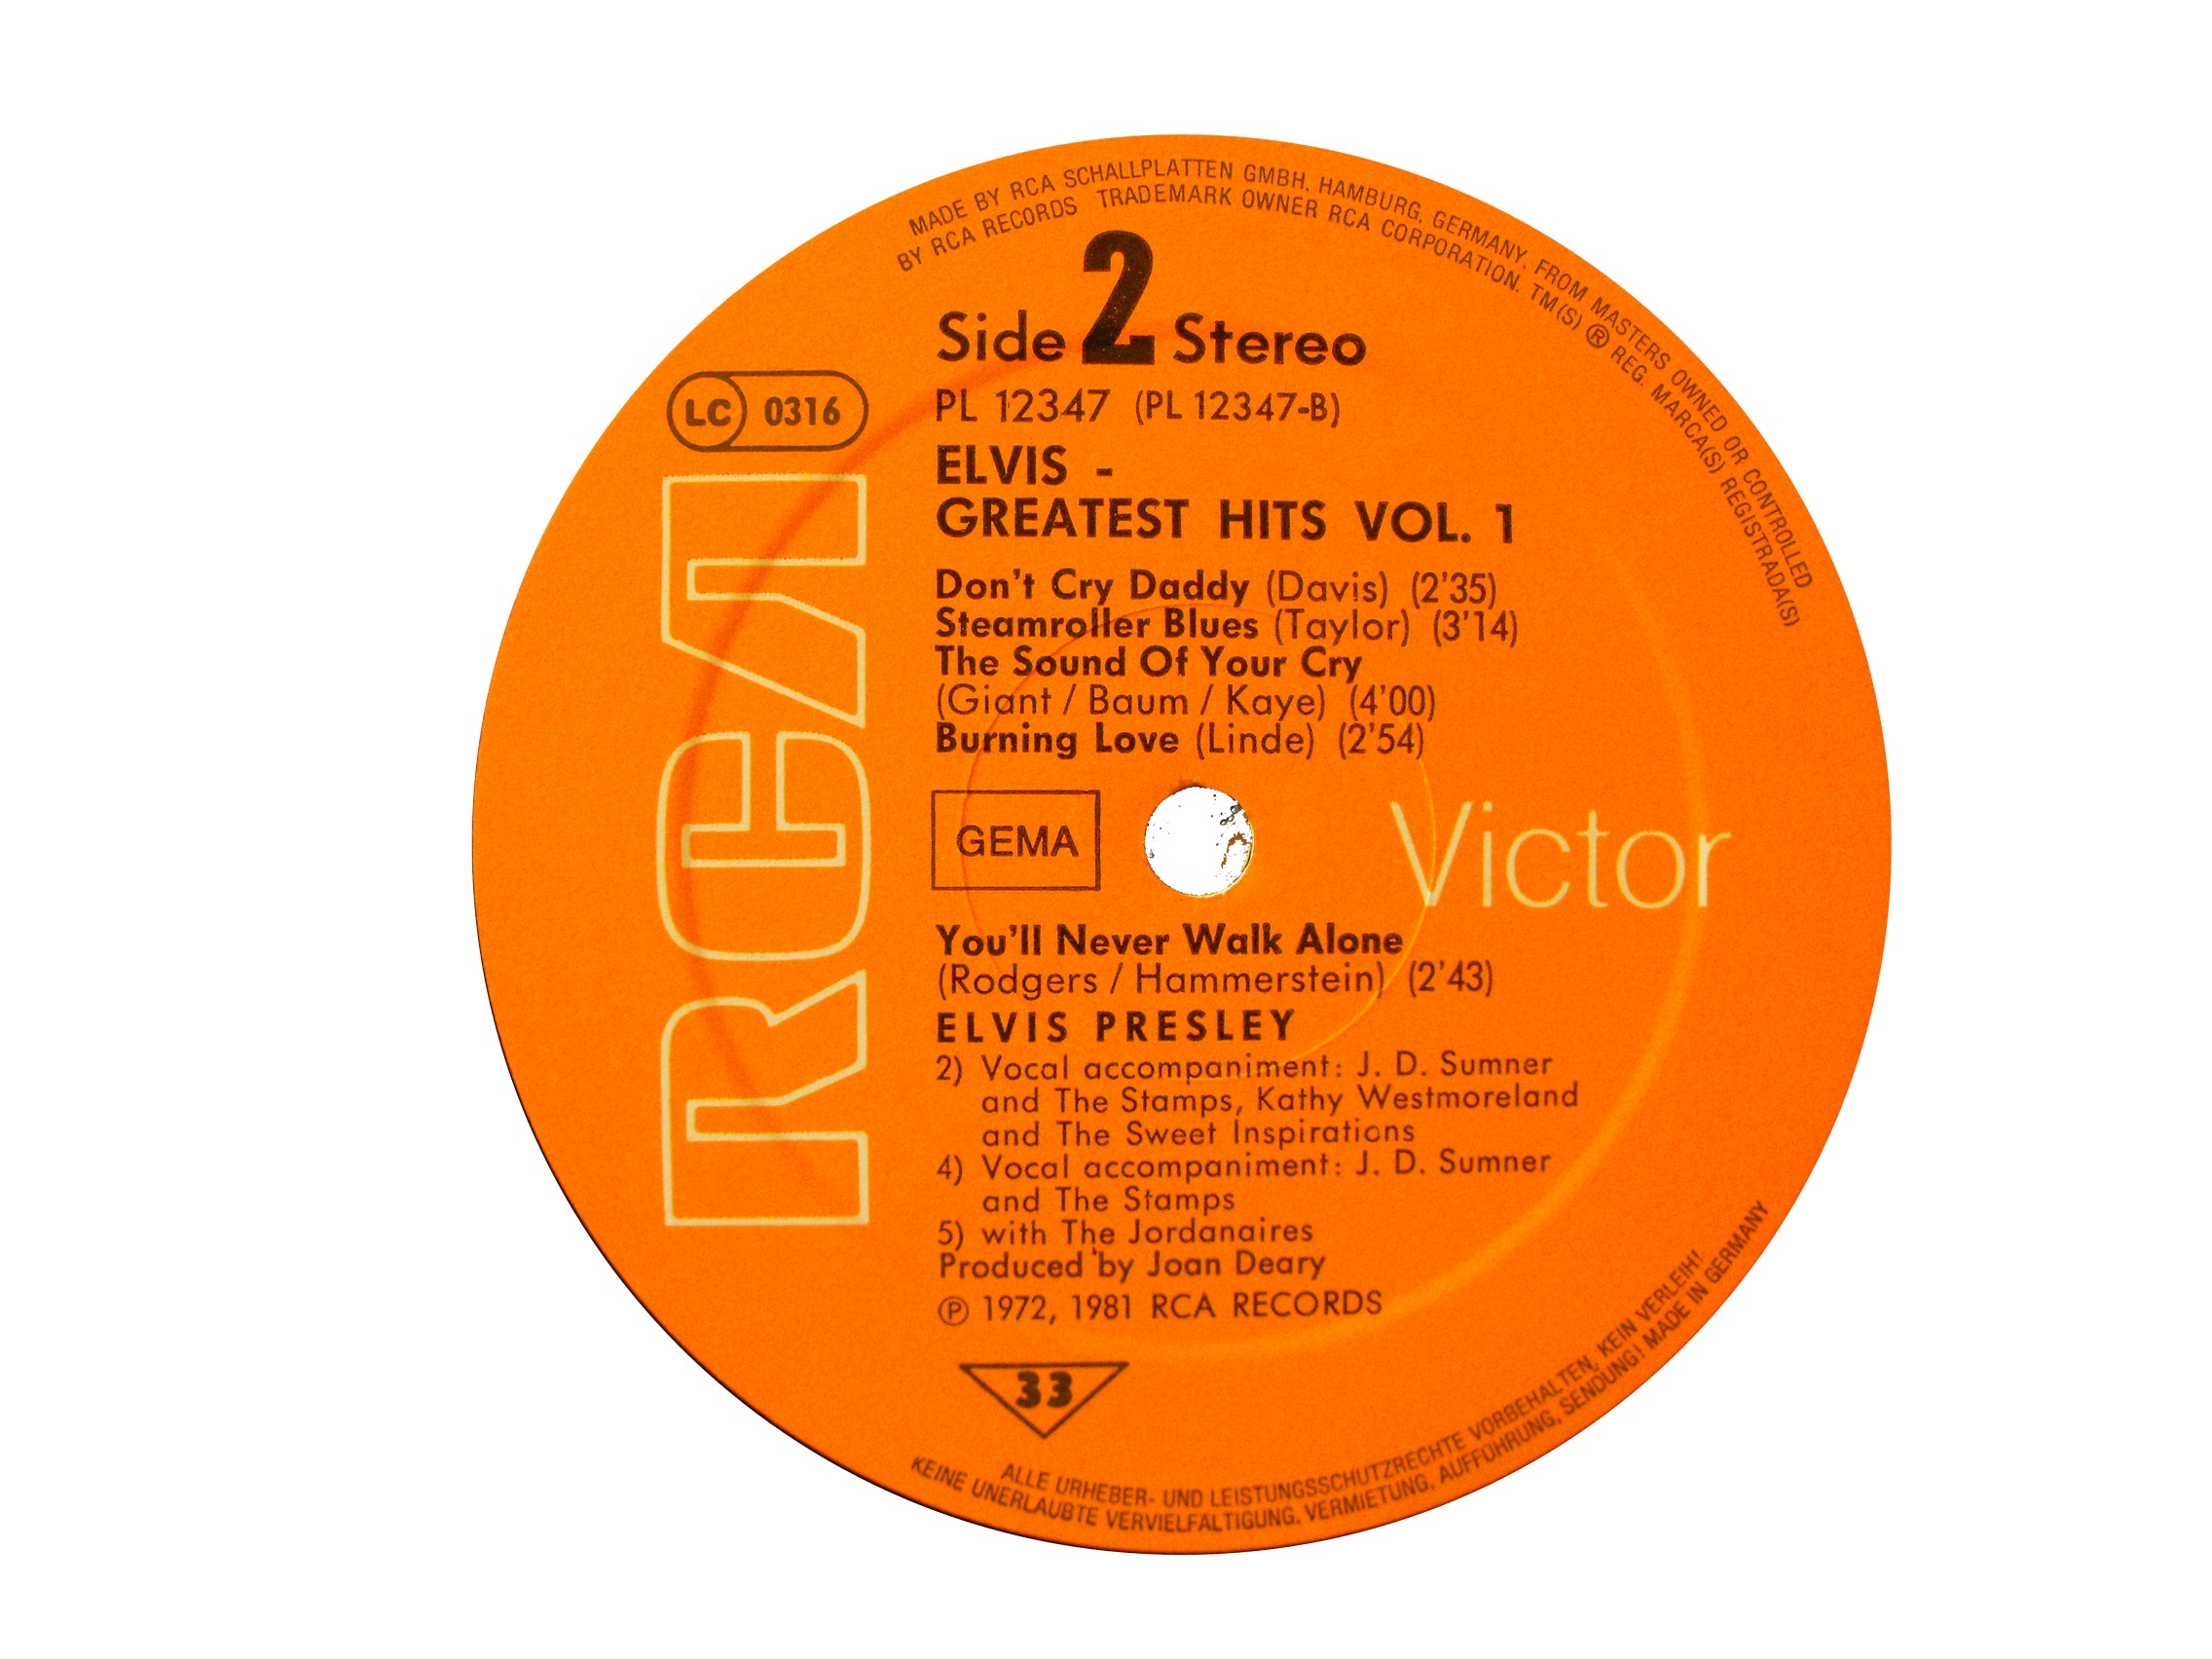 GREATEST HITS VOL. 1 Ghlabel20ku4n